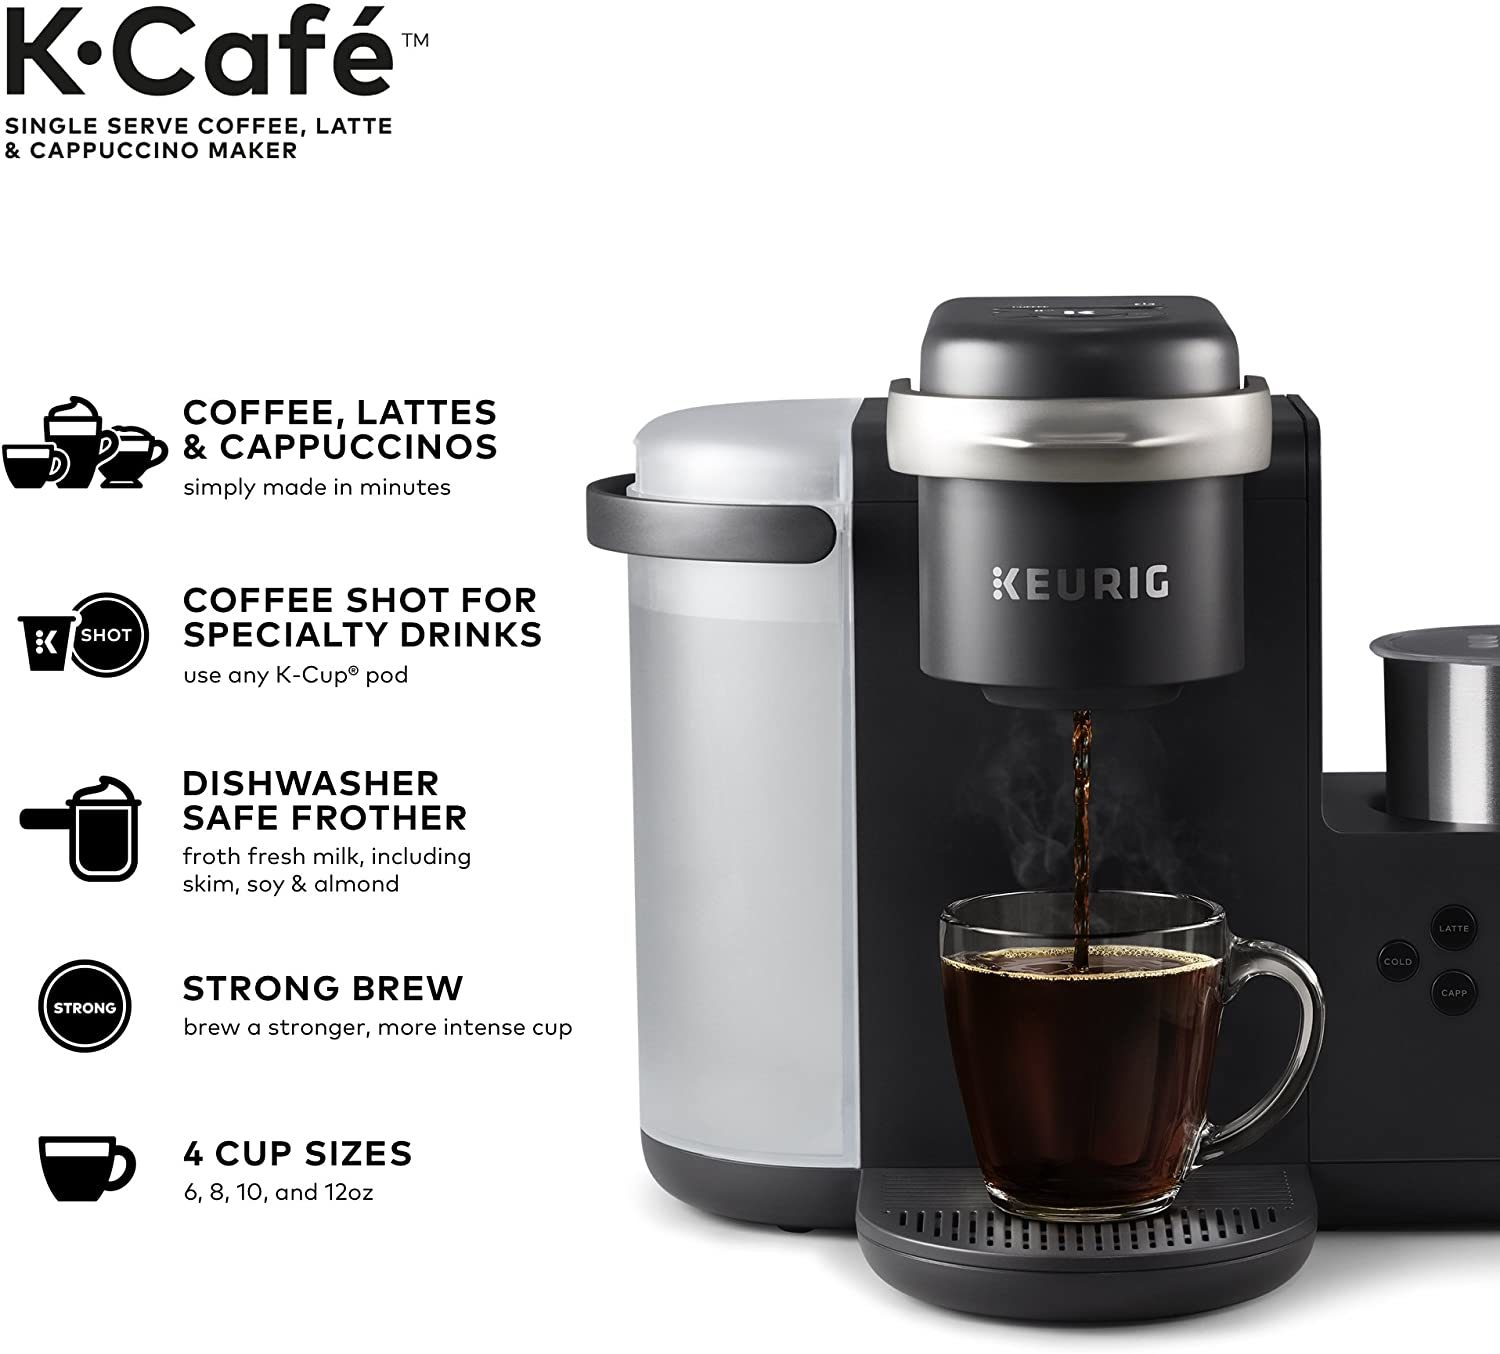 KEURIG K-CAFE Coffee Maker